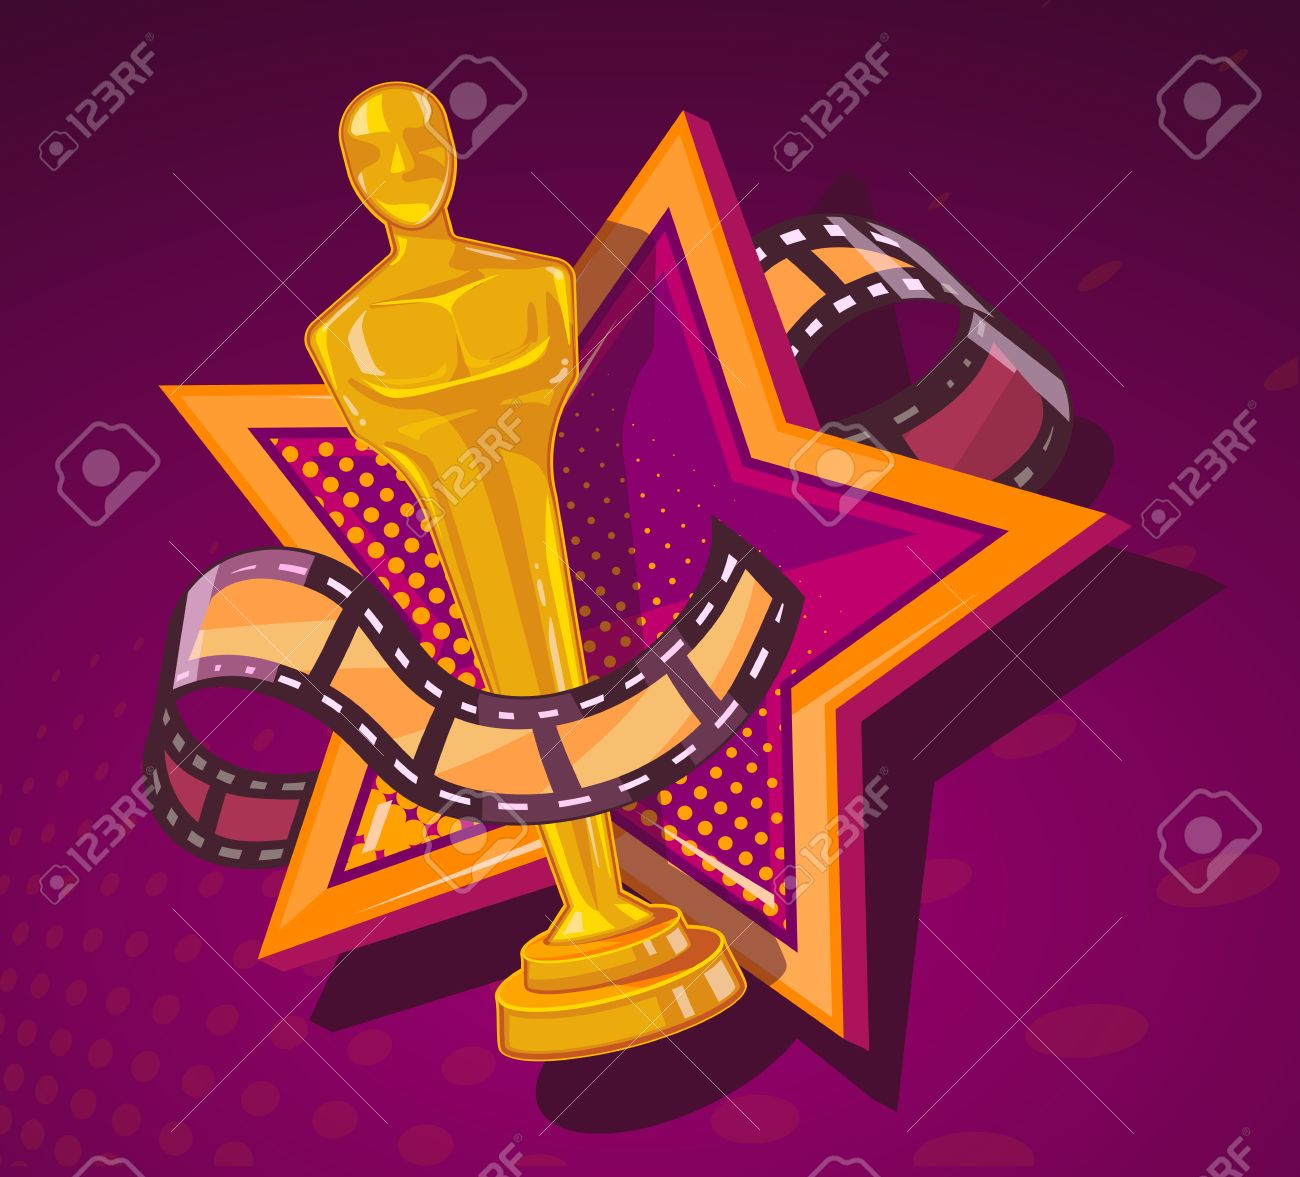 Vector illustration of yellow cinema award with big star and film reel on dark red background. Art design for web, site, advertising, banner, poster, flyer, brochure, board, paper print. - 52747014